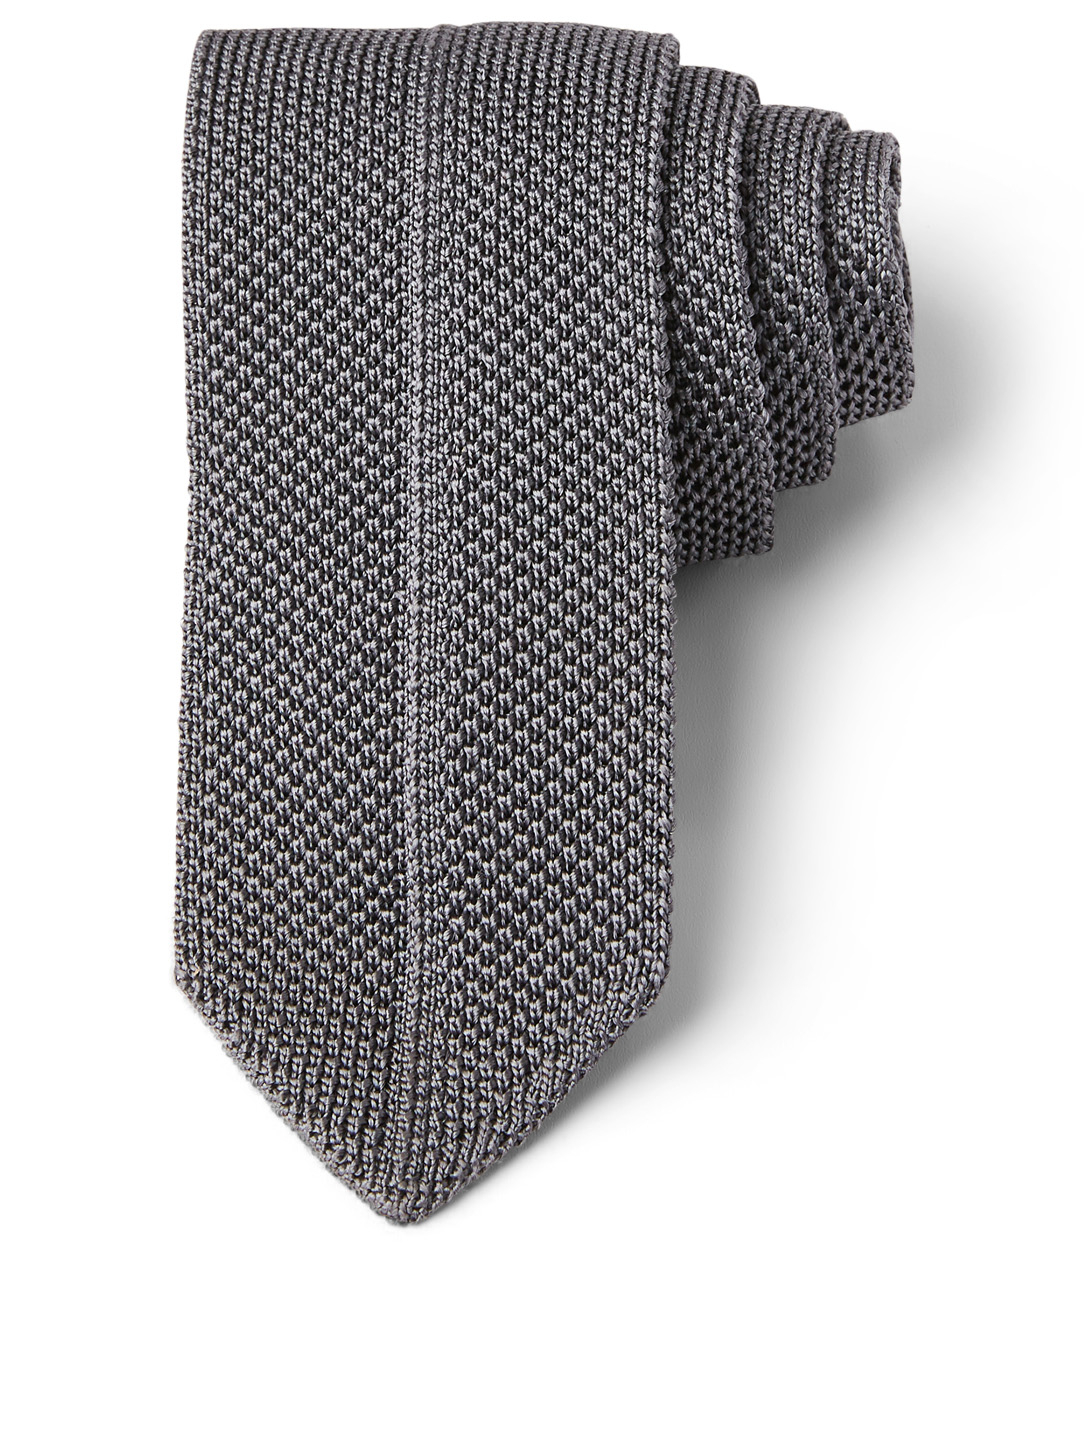 ERMENEGILDO ZEGNA Silk Knit Tie Men's Grey